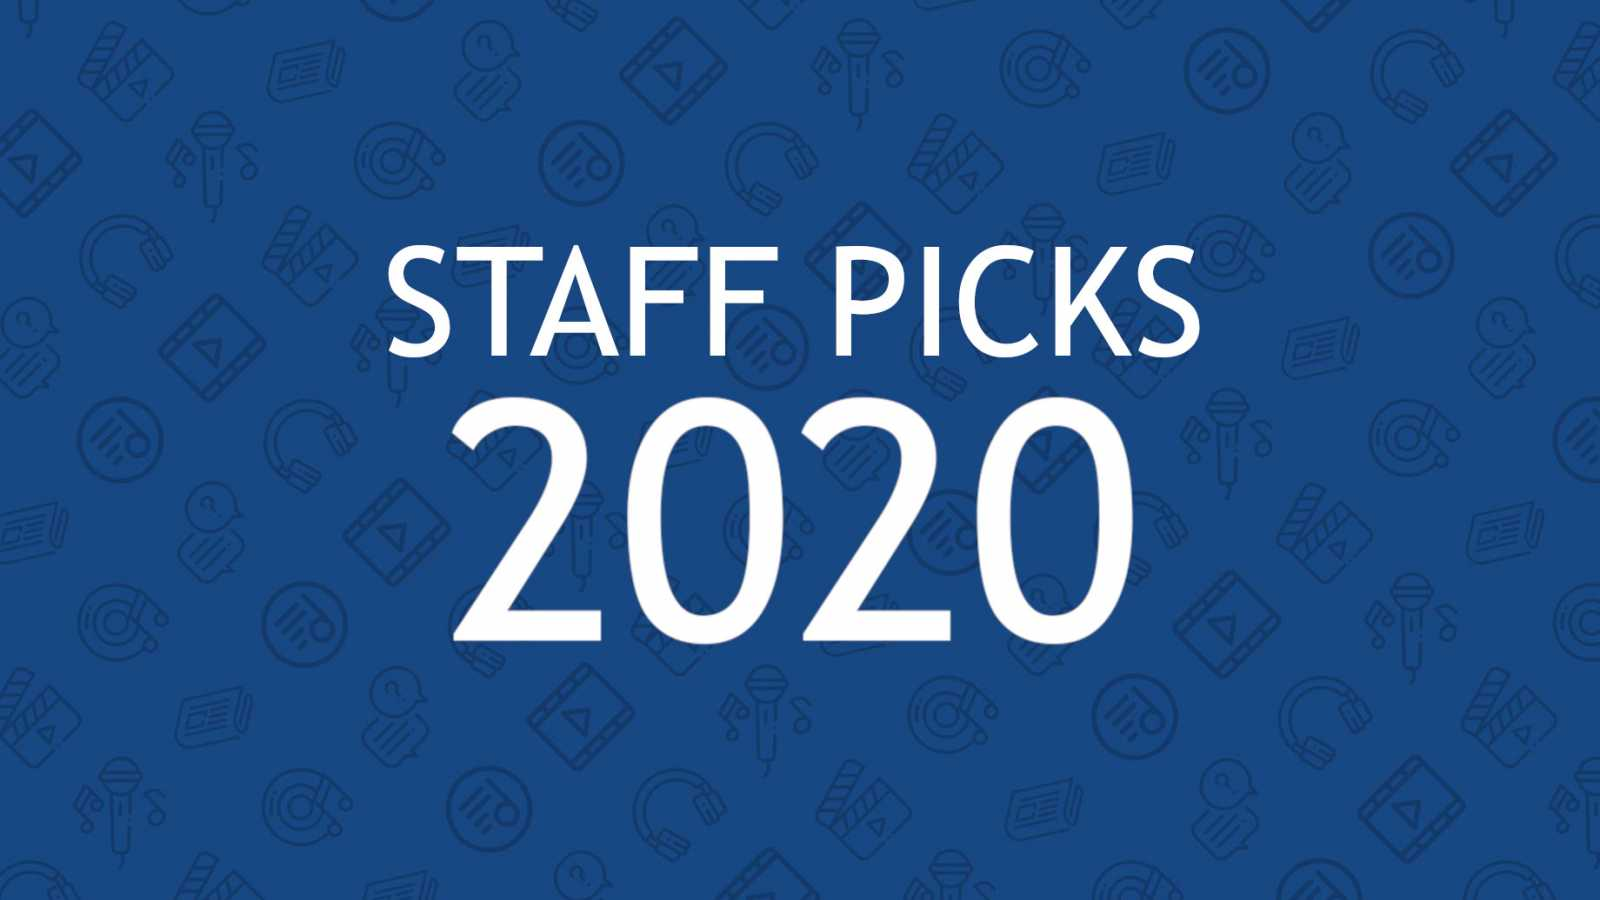 JaME's Staff Picks 2020 Playlist